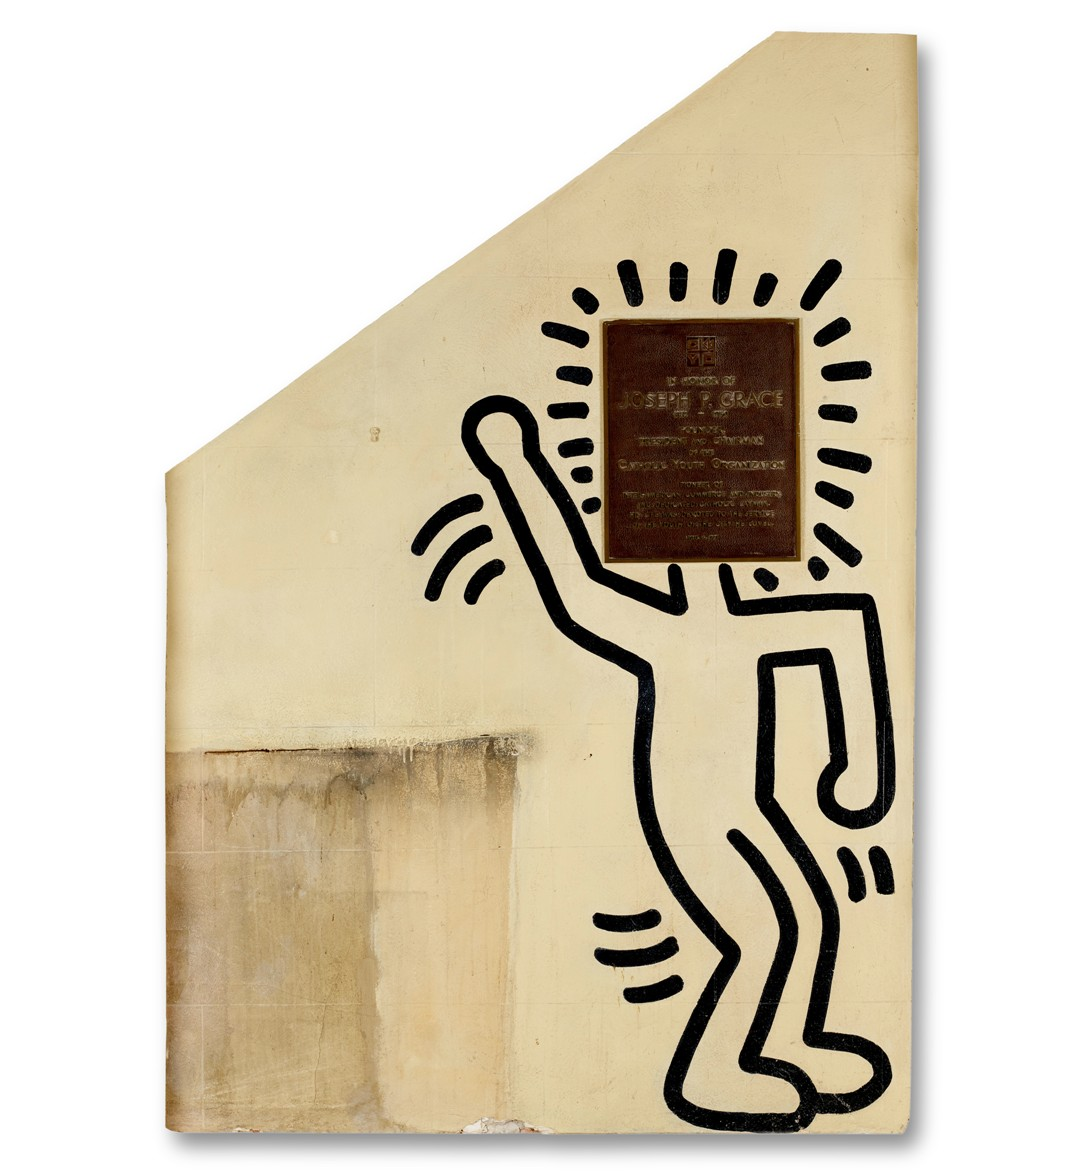 Pop Art by Keith Haring